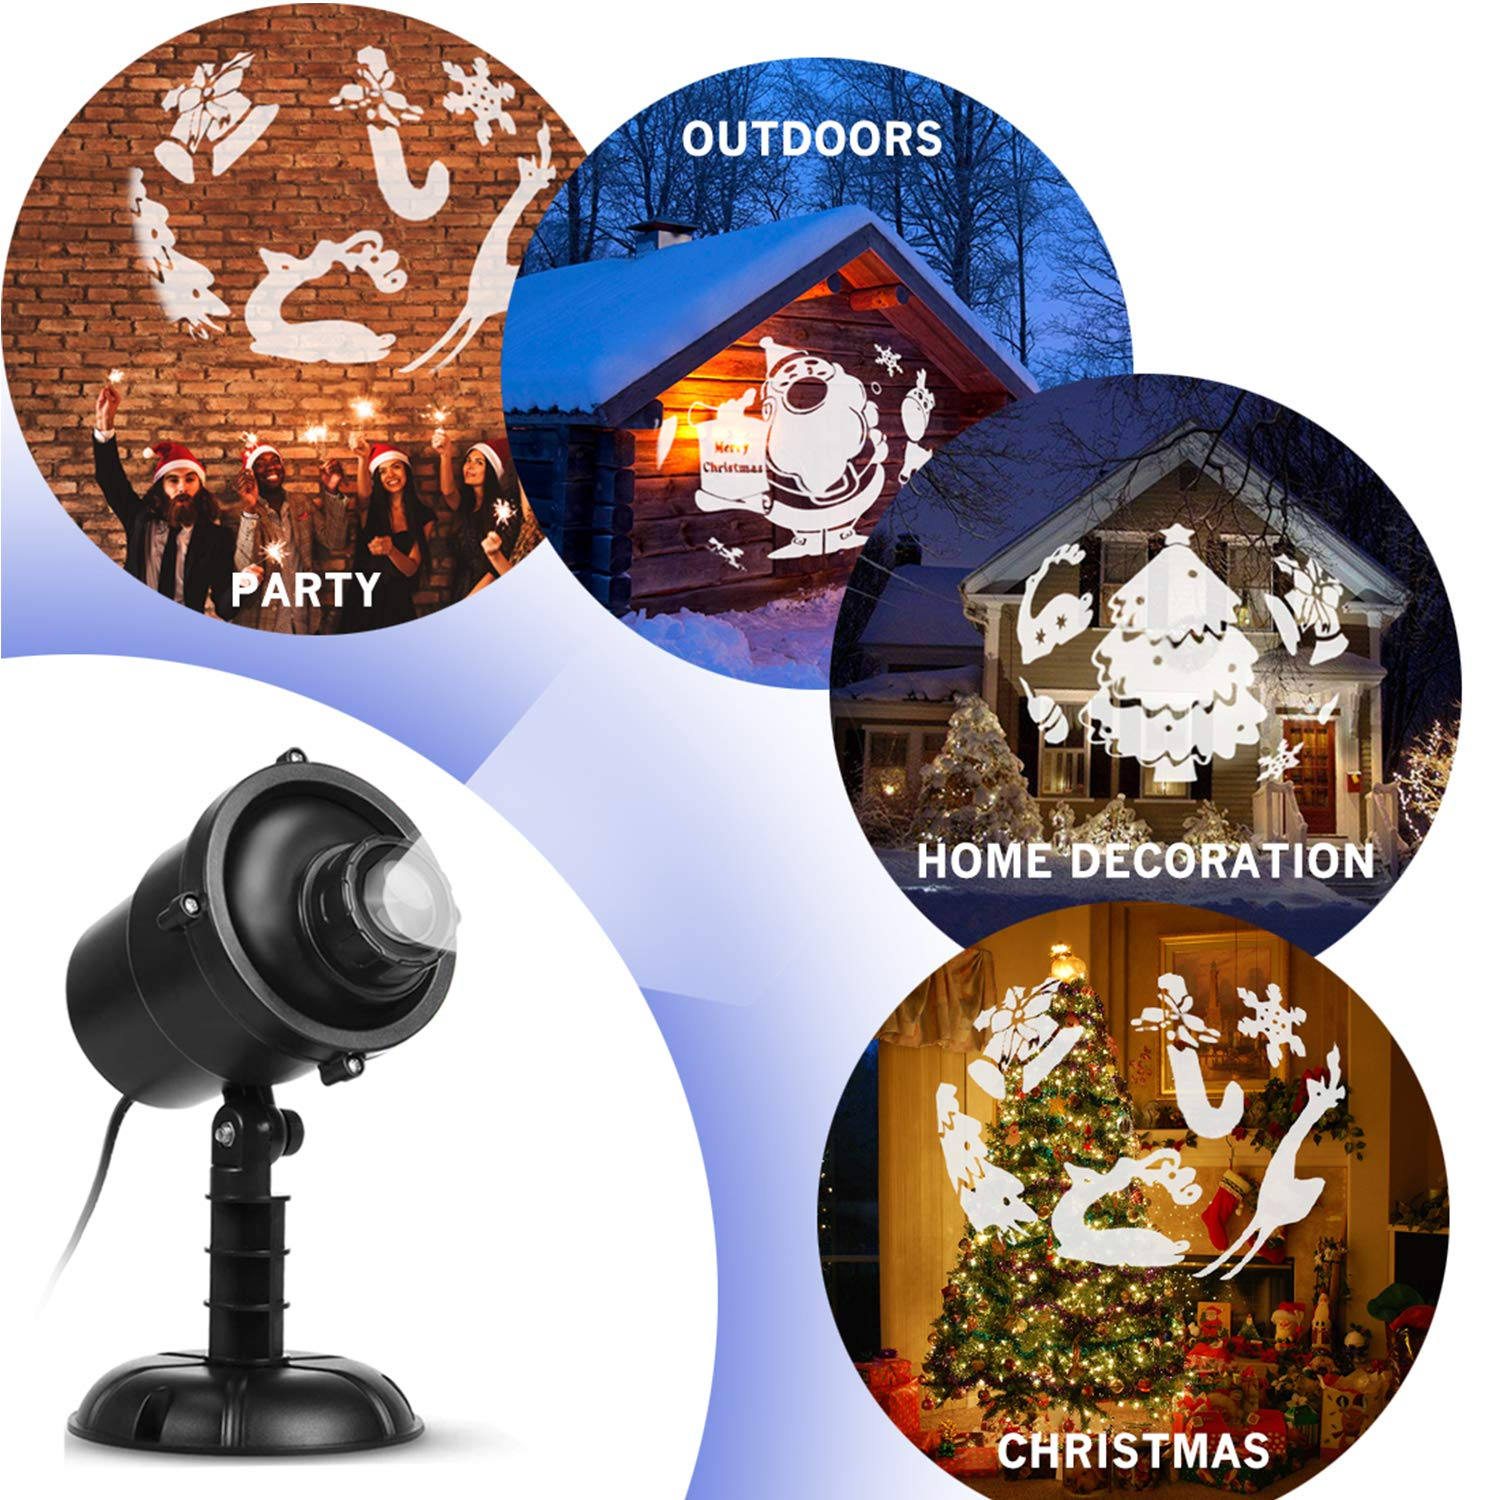 Christmas Led Projector Lights 3d Rotating Effect Decorations With Garden Timer Remote Control And Landscape Waterproof Ip65 Perfect For